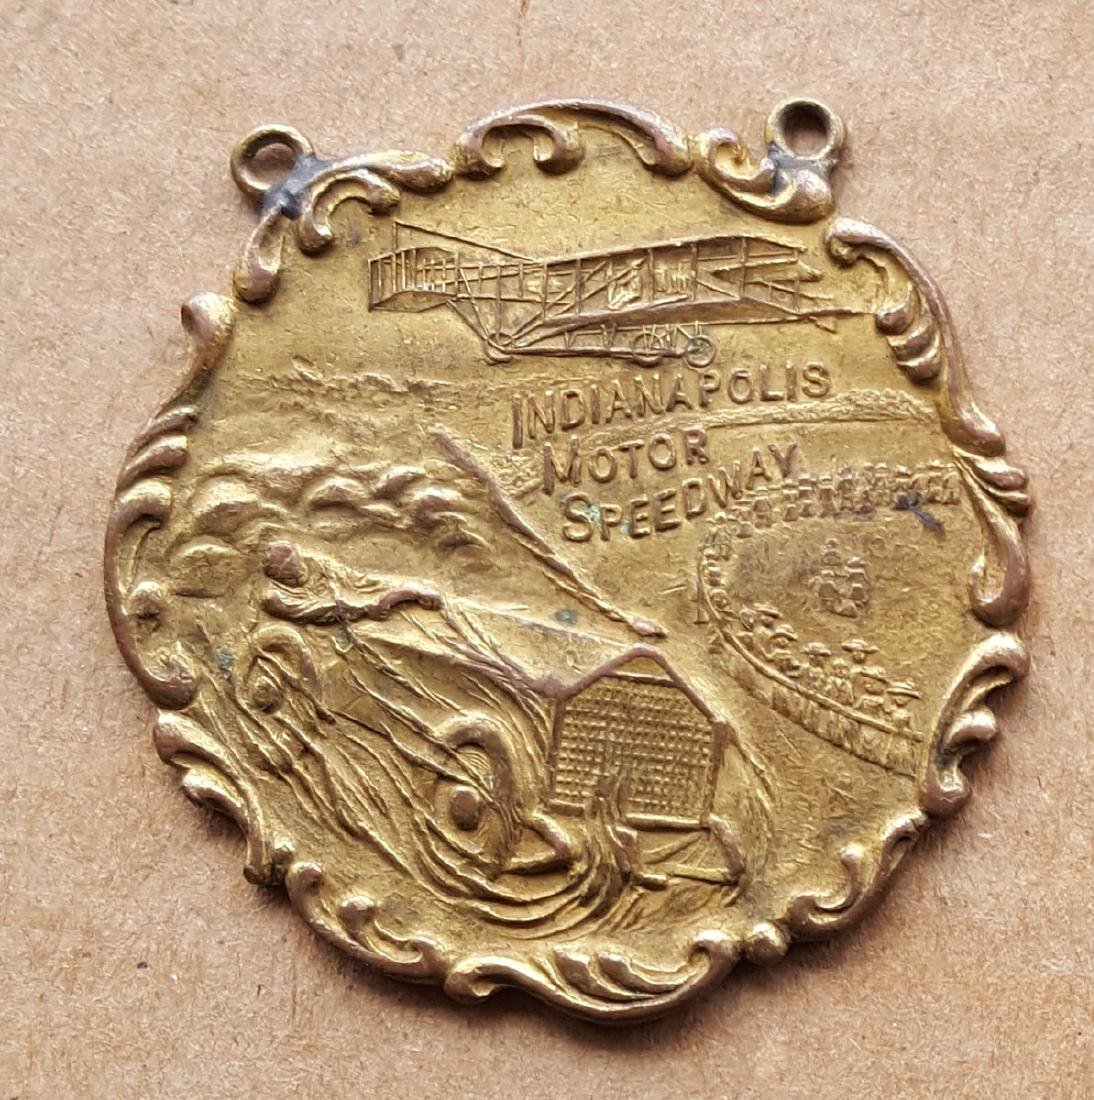 Very early INDY 500 medal